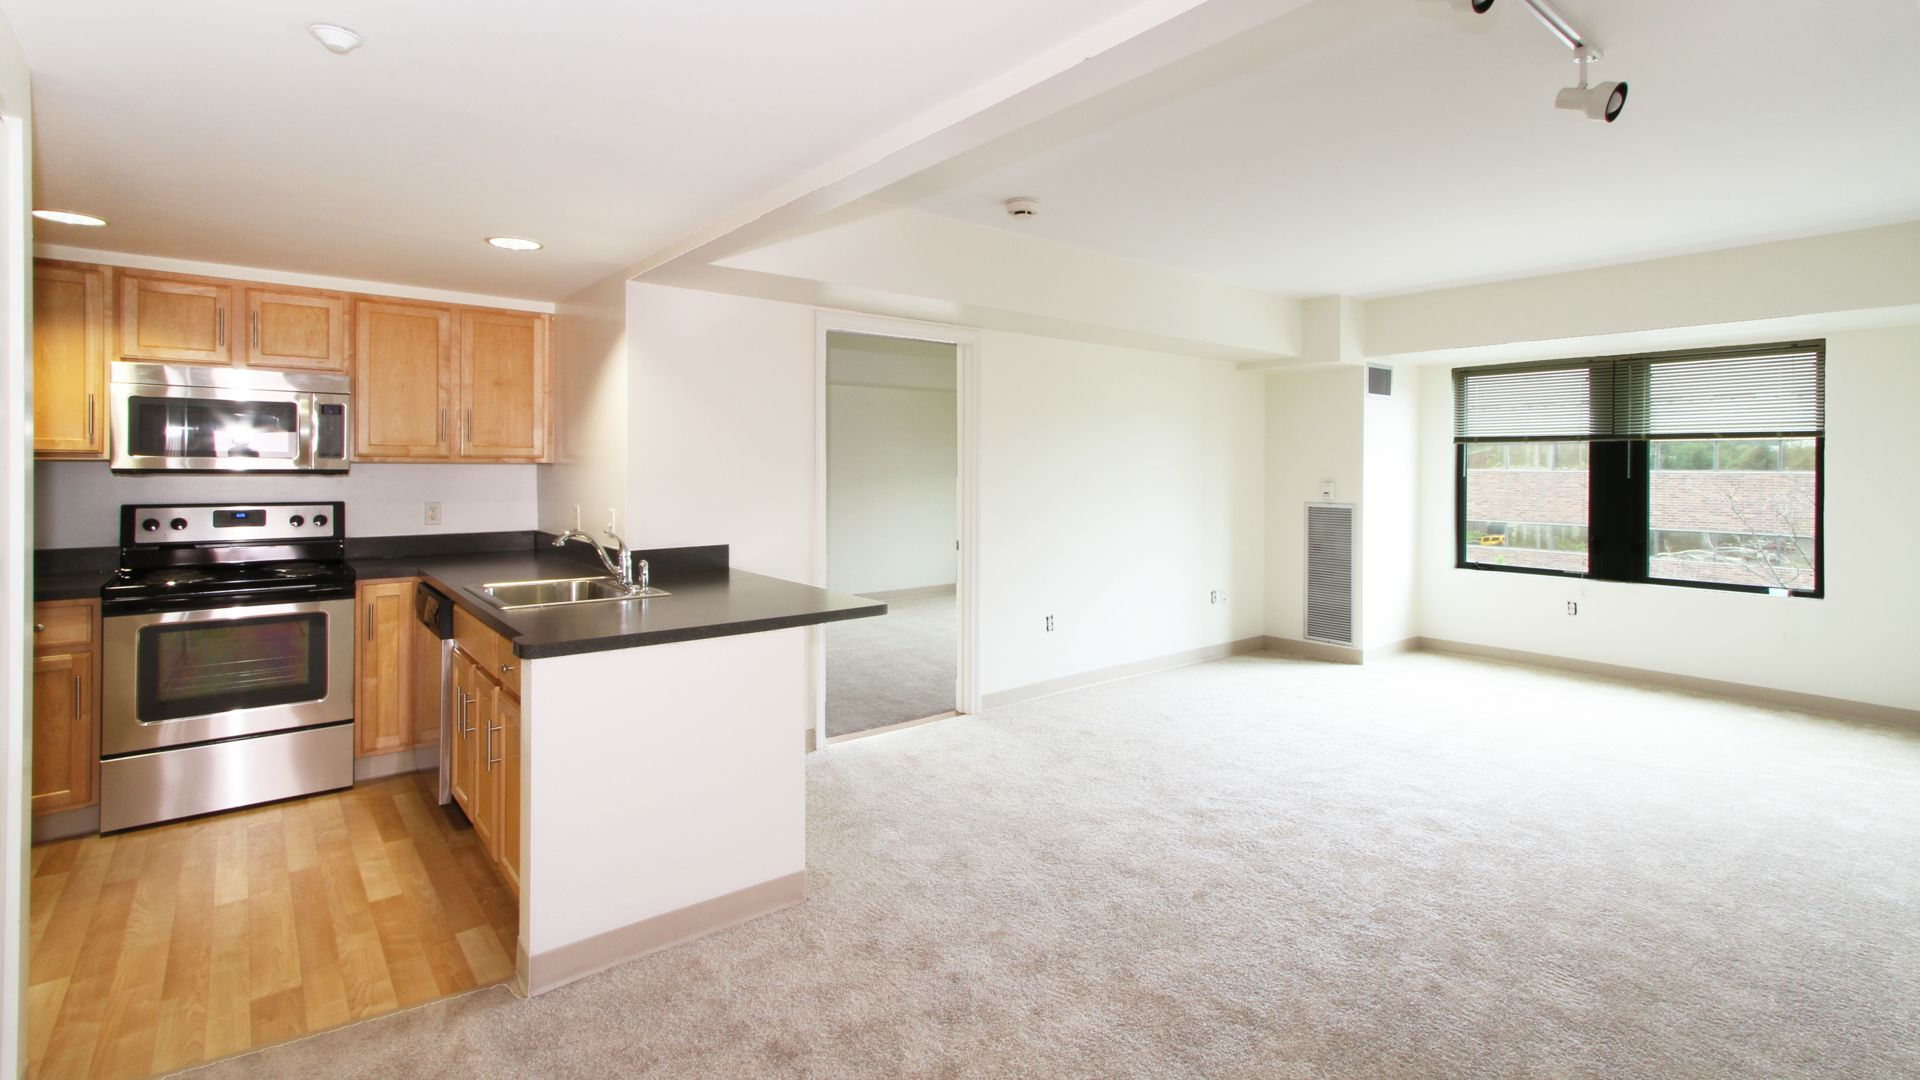 Cambridge Park Apartments - Kitchen and Dining Room